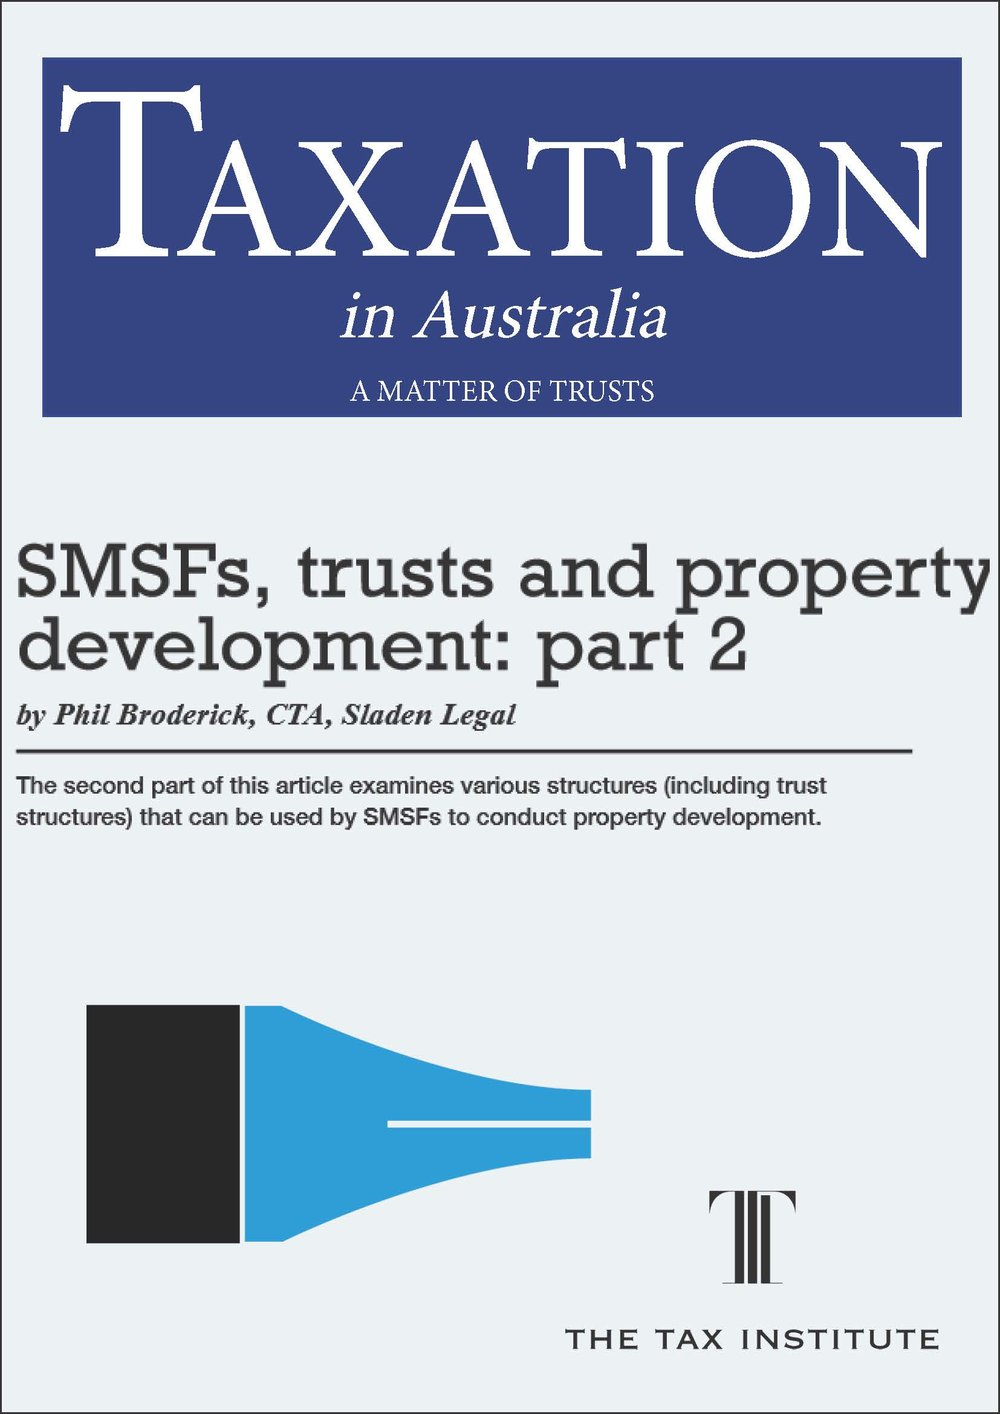 SMSFs, trusts and property development: part 2 13 May 2015